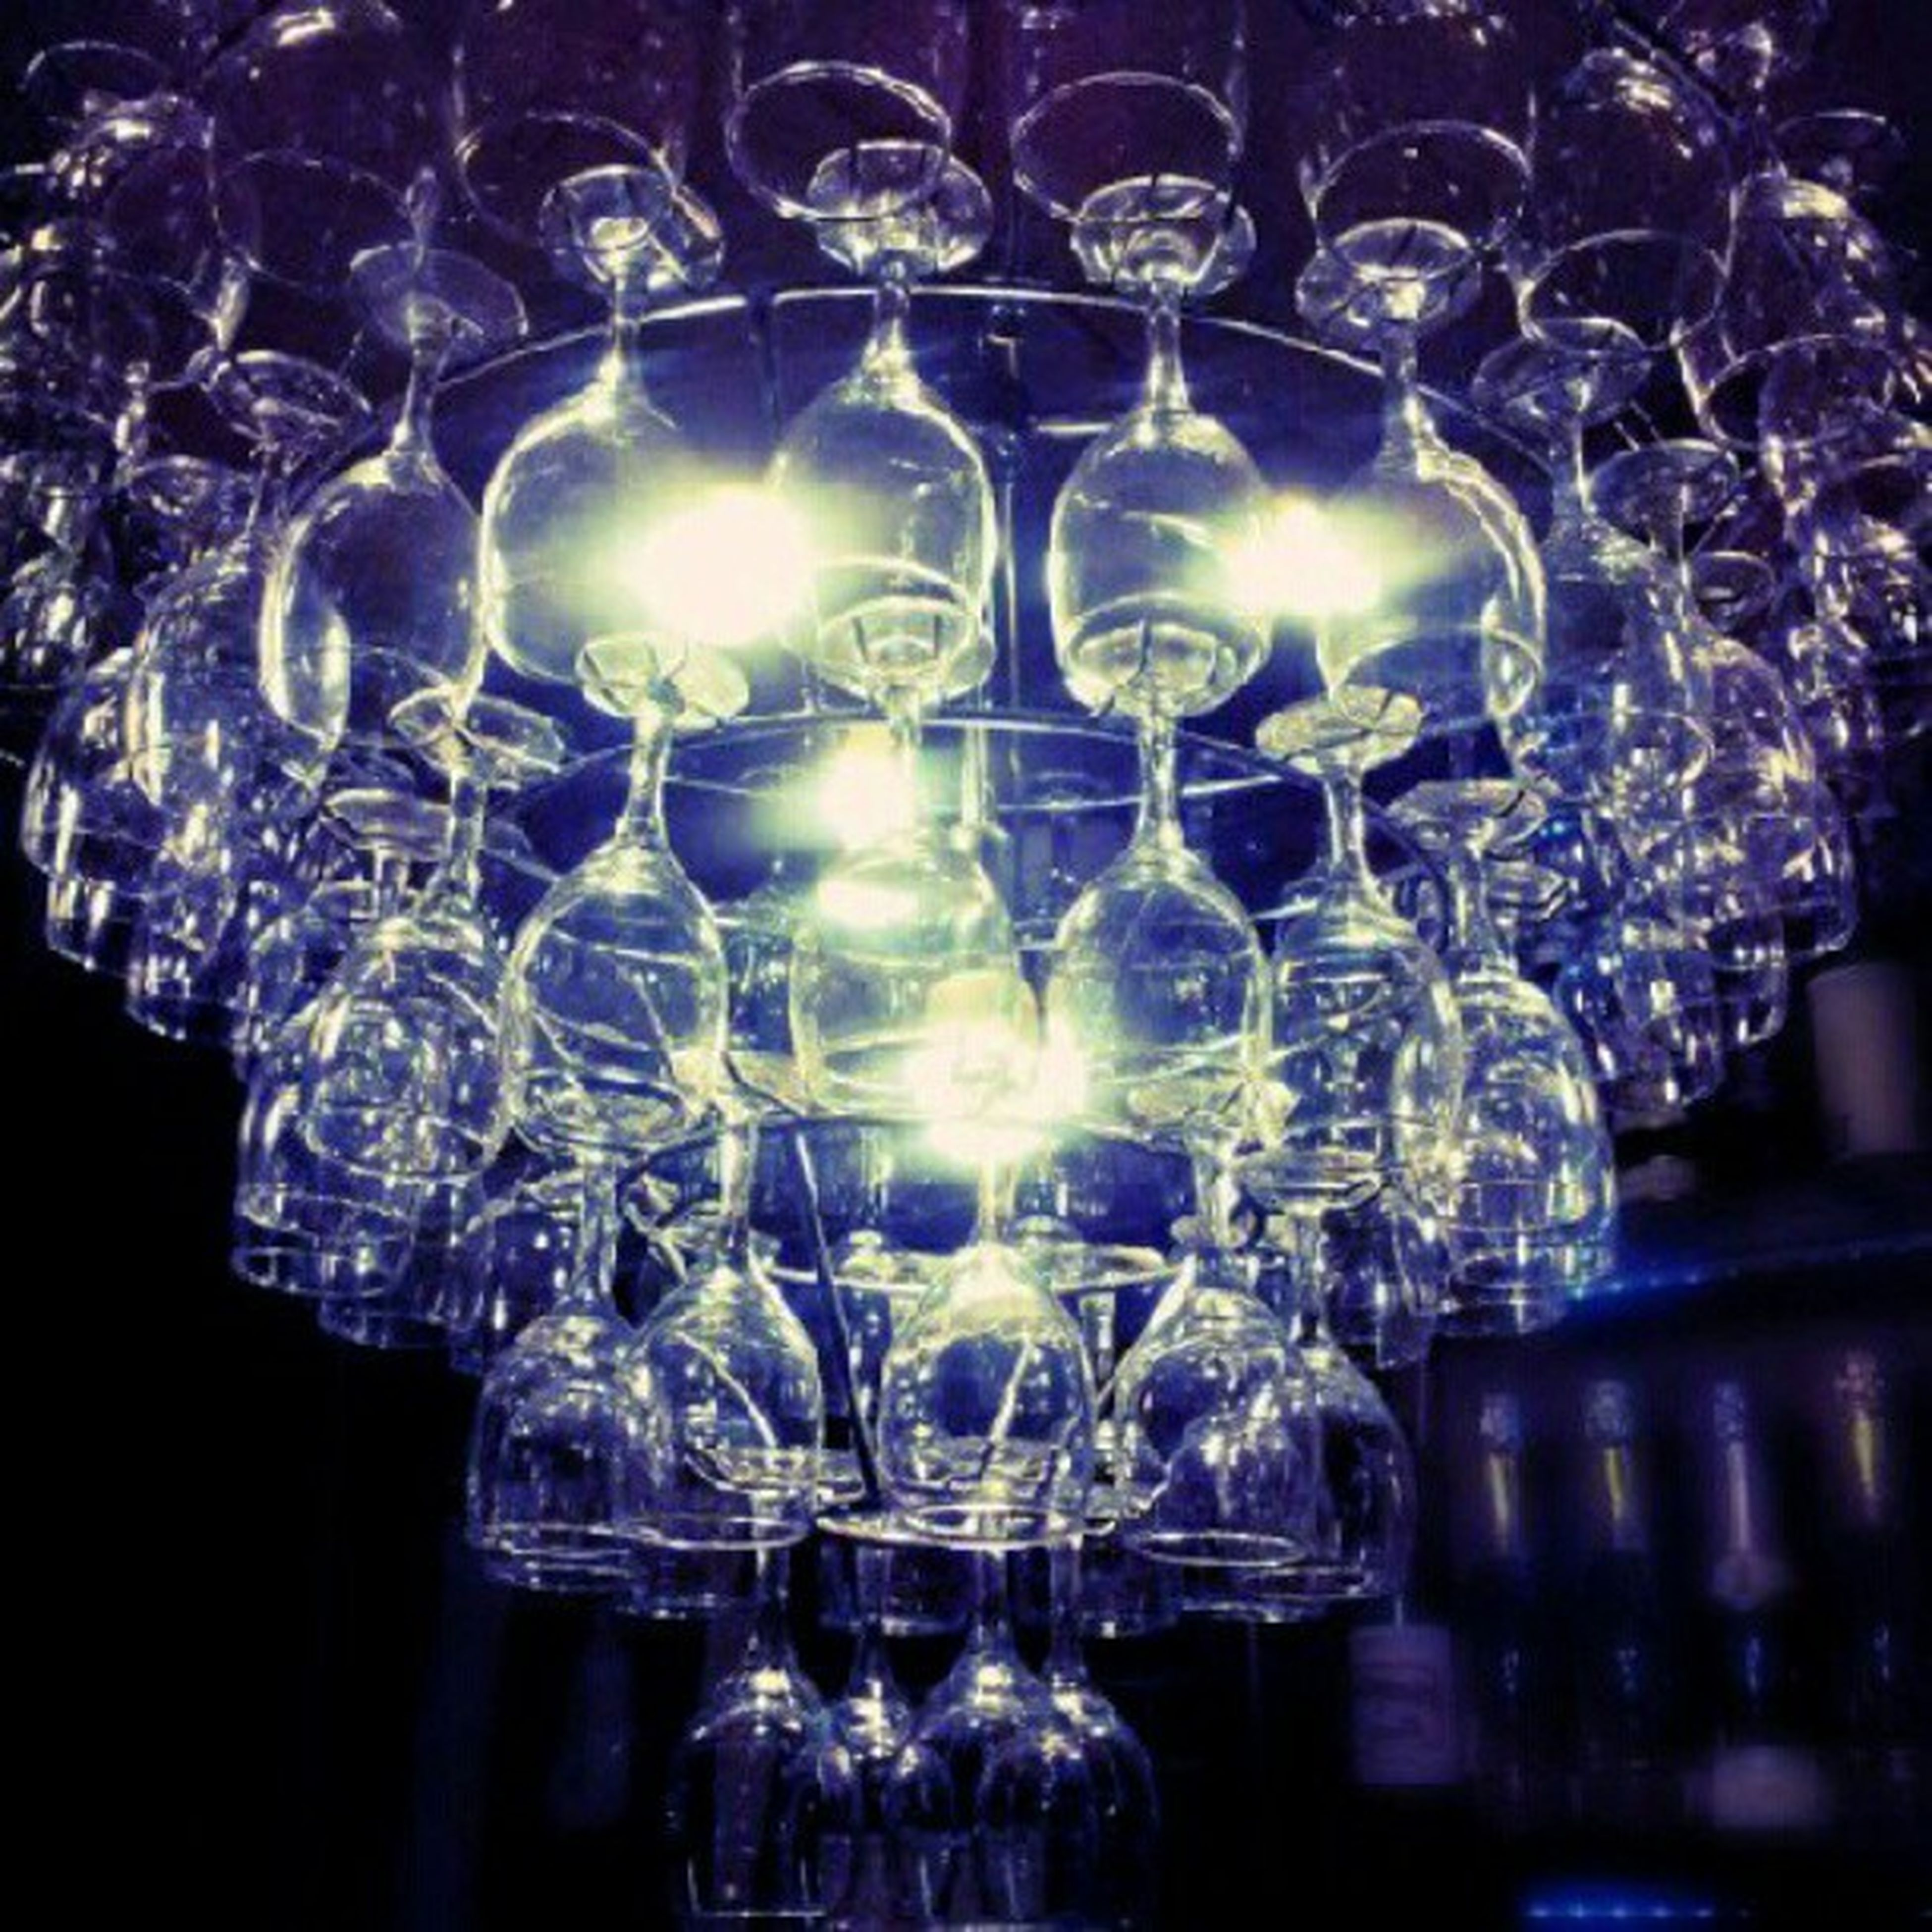 indoors, glass - material, transparent, luxury, reflection, decoration, illuminated, close-up, chandelier, elegance, lighting equipment, decor, pattern, design, wineglass, ceiling, still life, no people, crystal, glowing